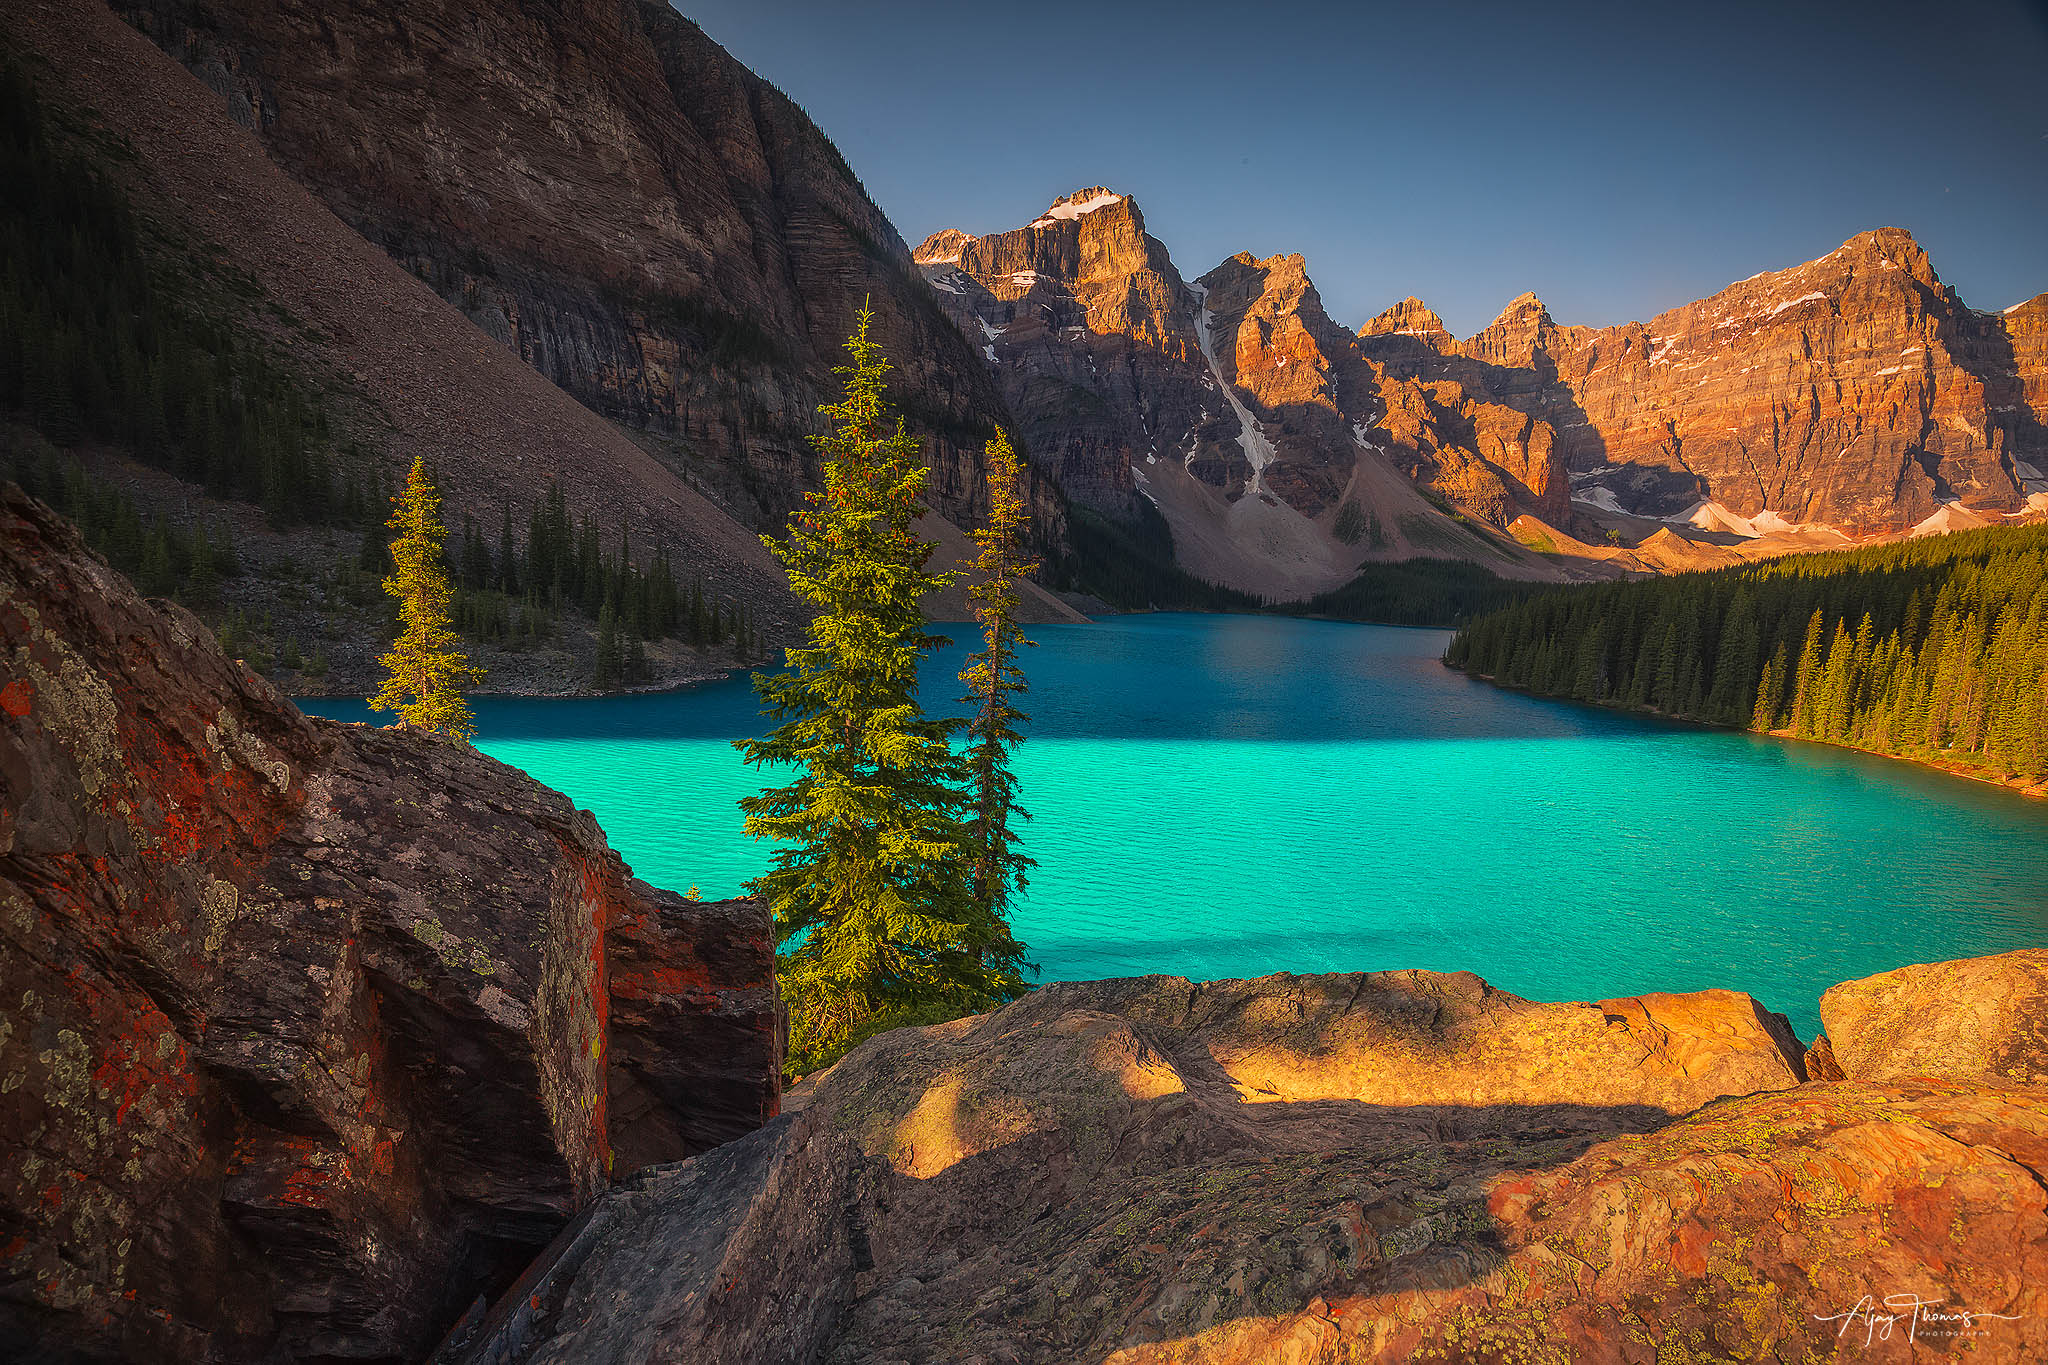 I have never seen water so beautiful. Azure blue of Moraine Lake is due to the refraction of light off the rock sediment deposited...